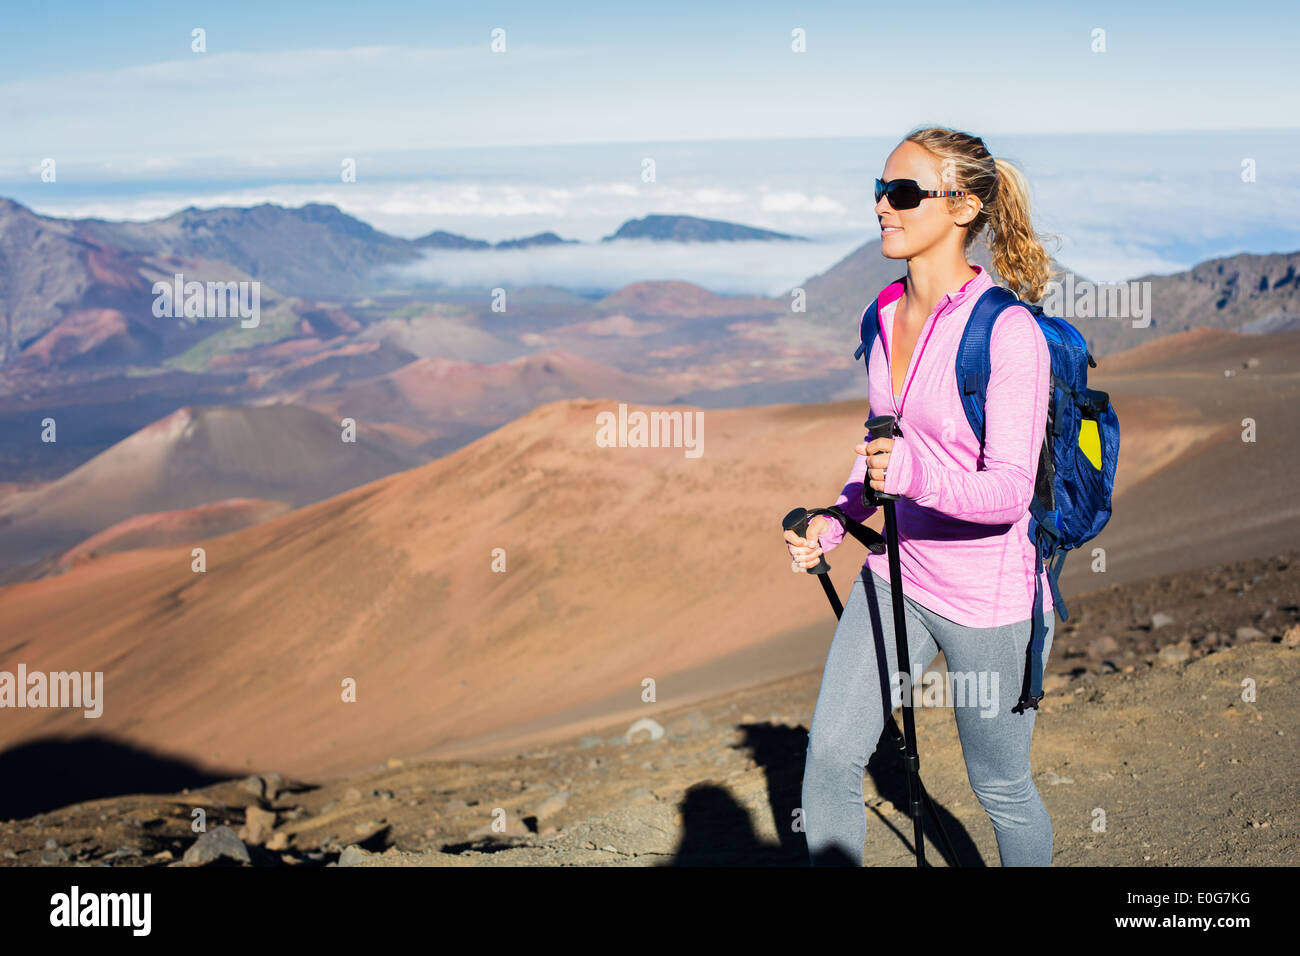 642f4dc890584c Woman hiking on beautiful mountain trail. Trekking and backpacking in the  mountains. Healthy lifestyle outdoor adventure concept